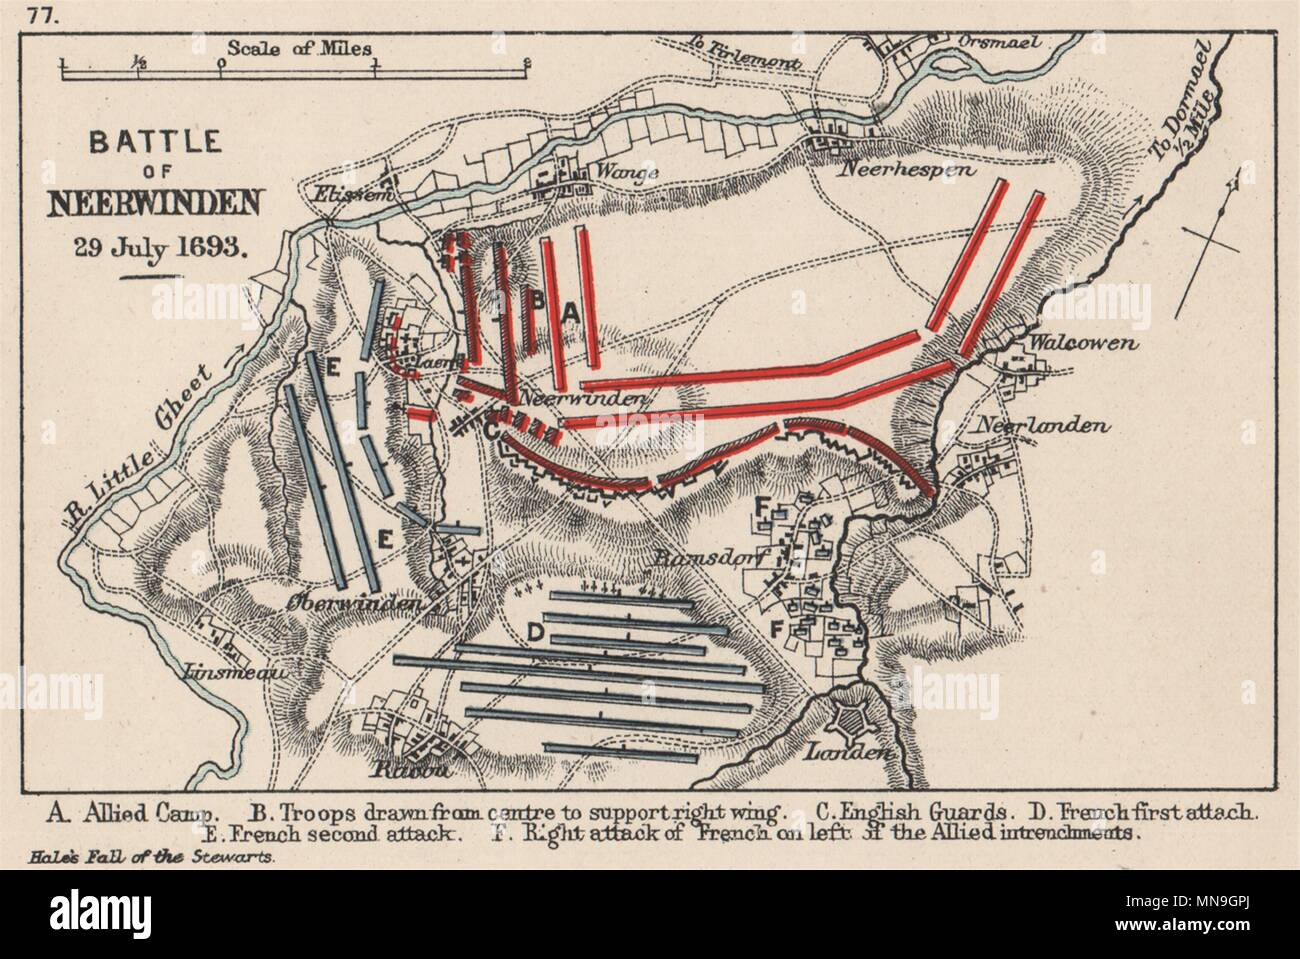 Battle of Neerwinden July 1693. French v Allies. SMALL 1907 map